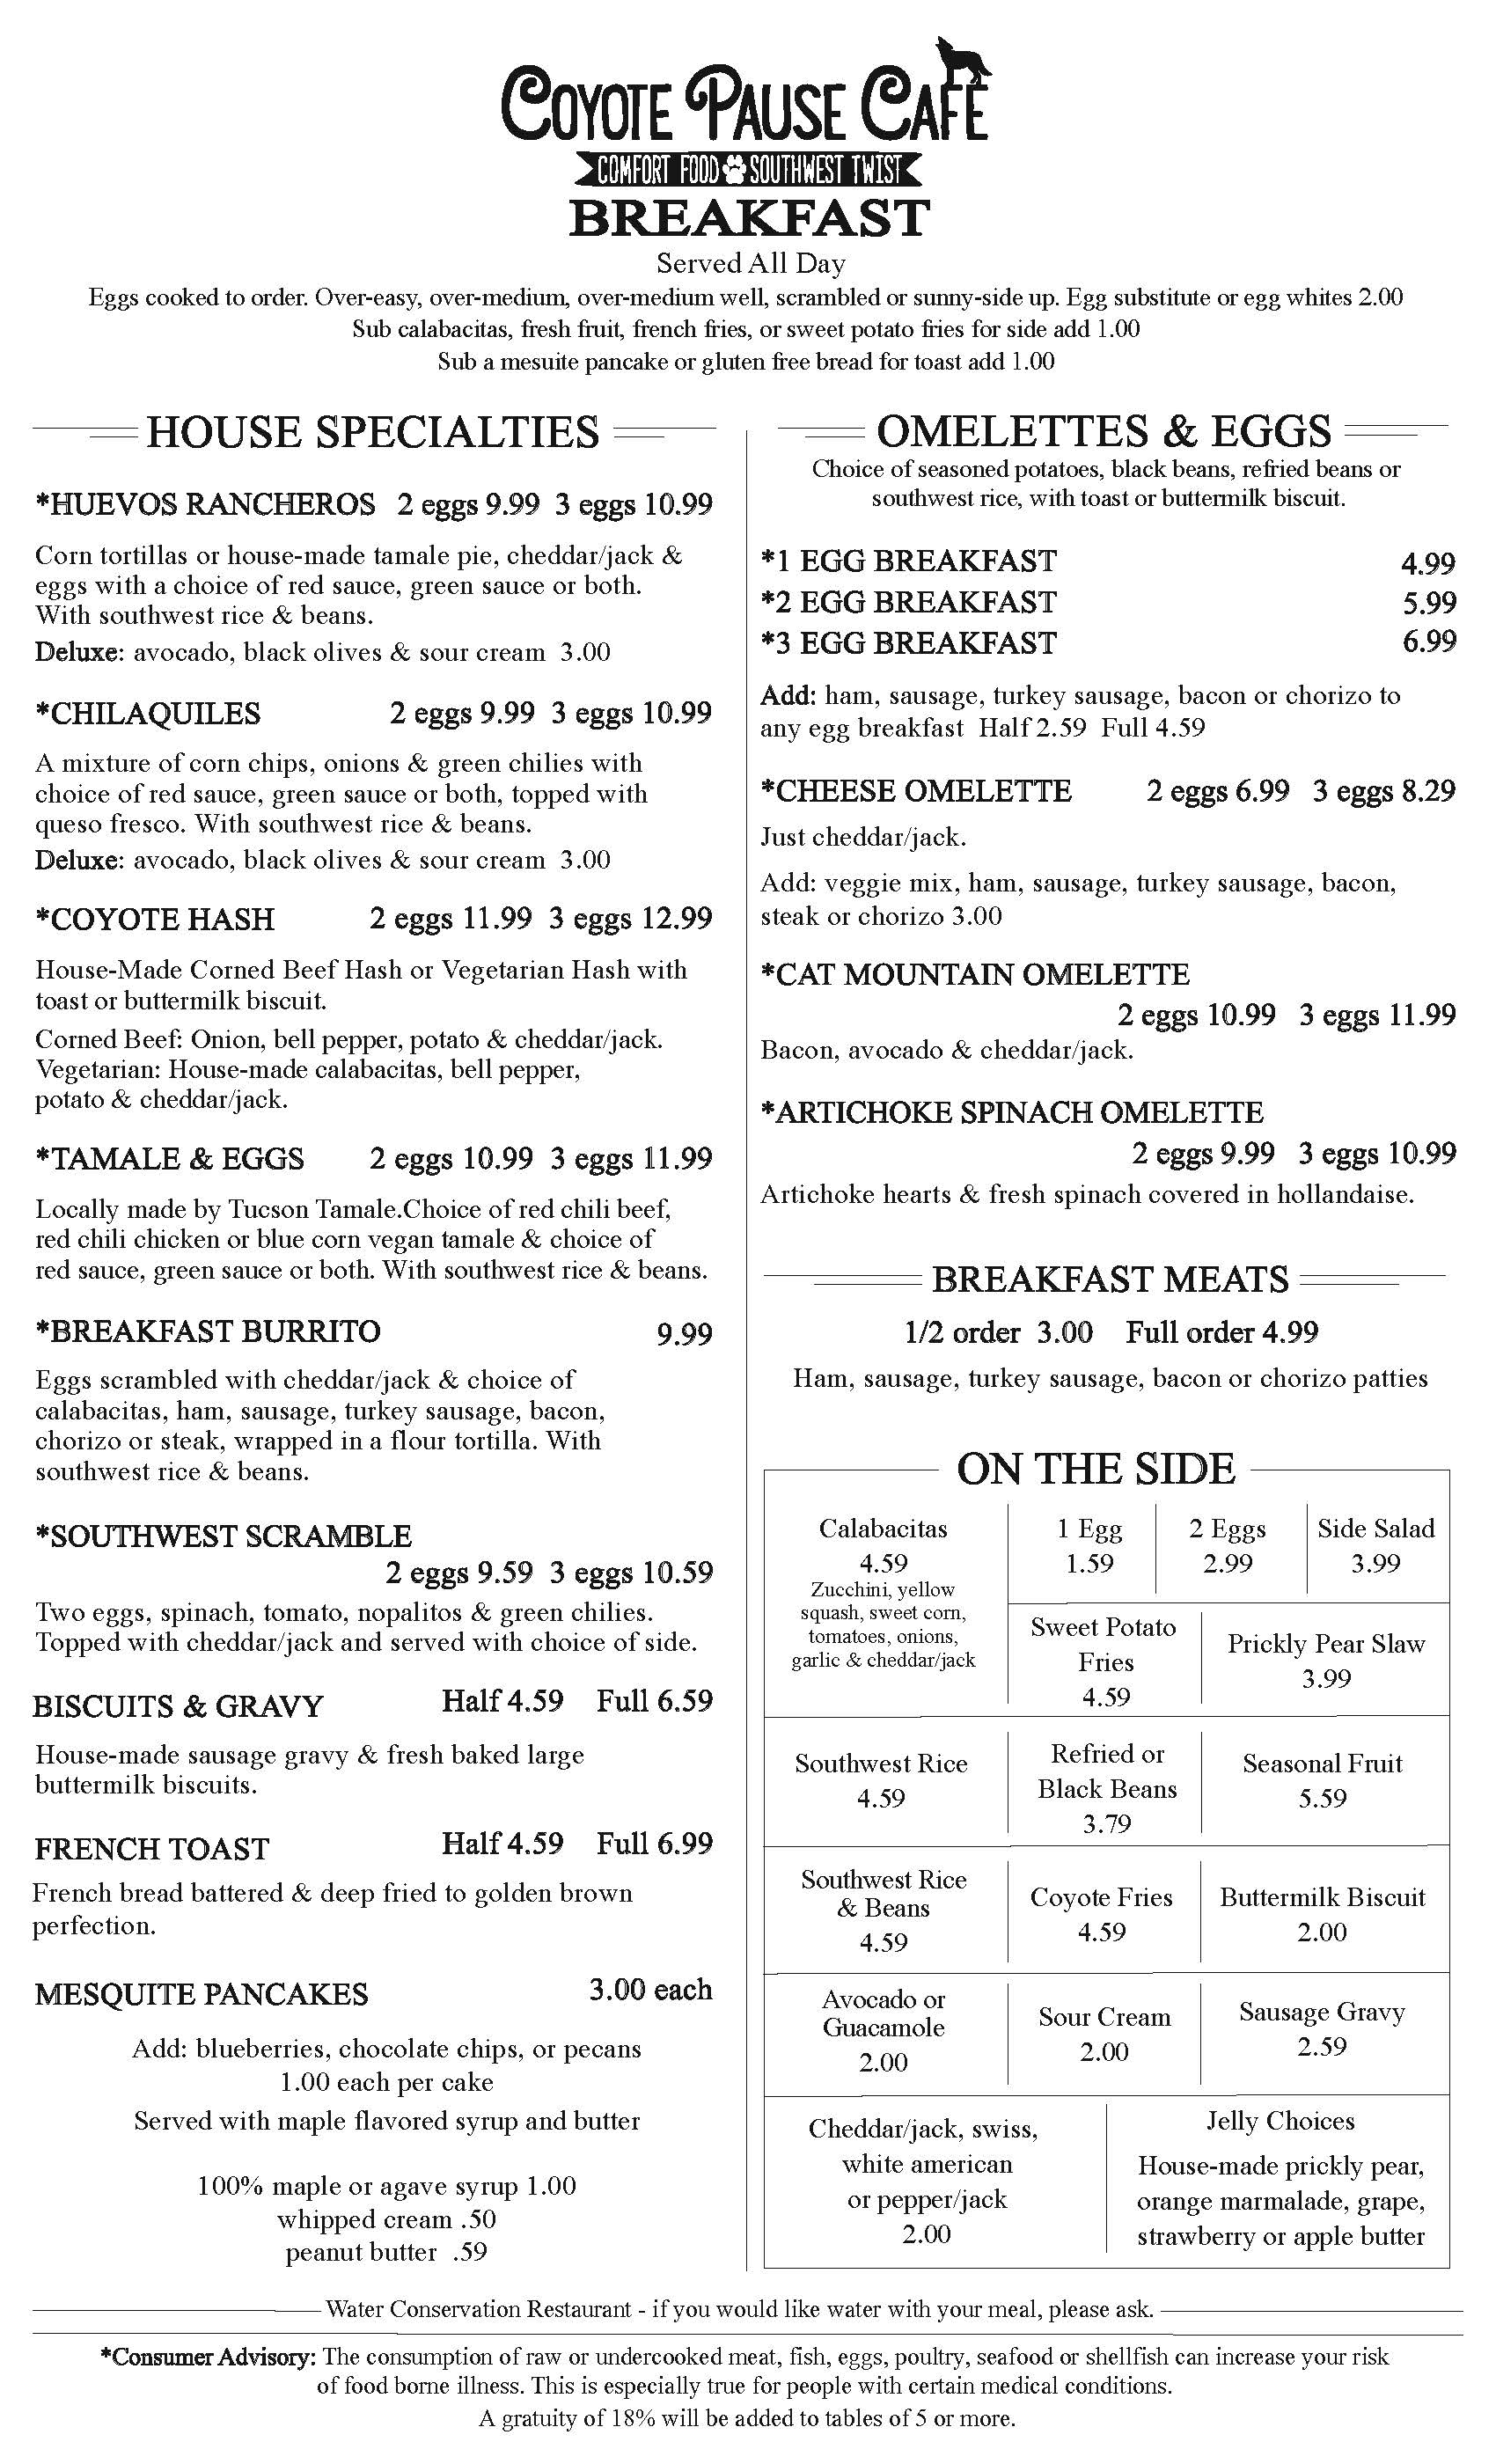 Coyote Pause Cafe Menu Front